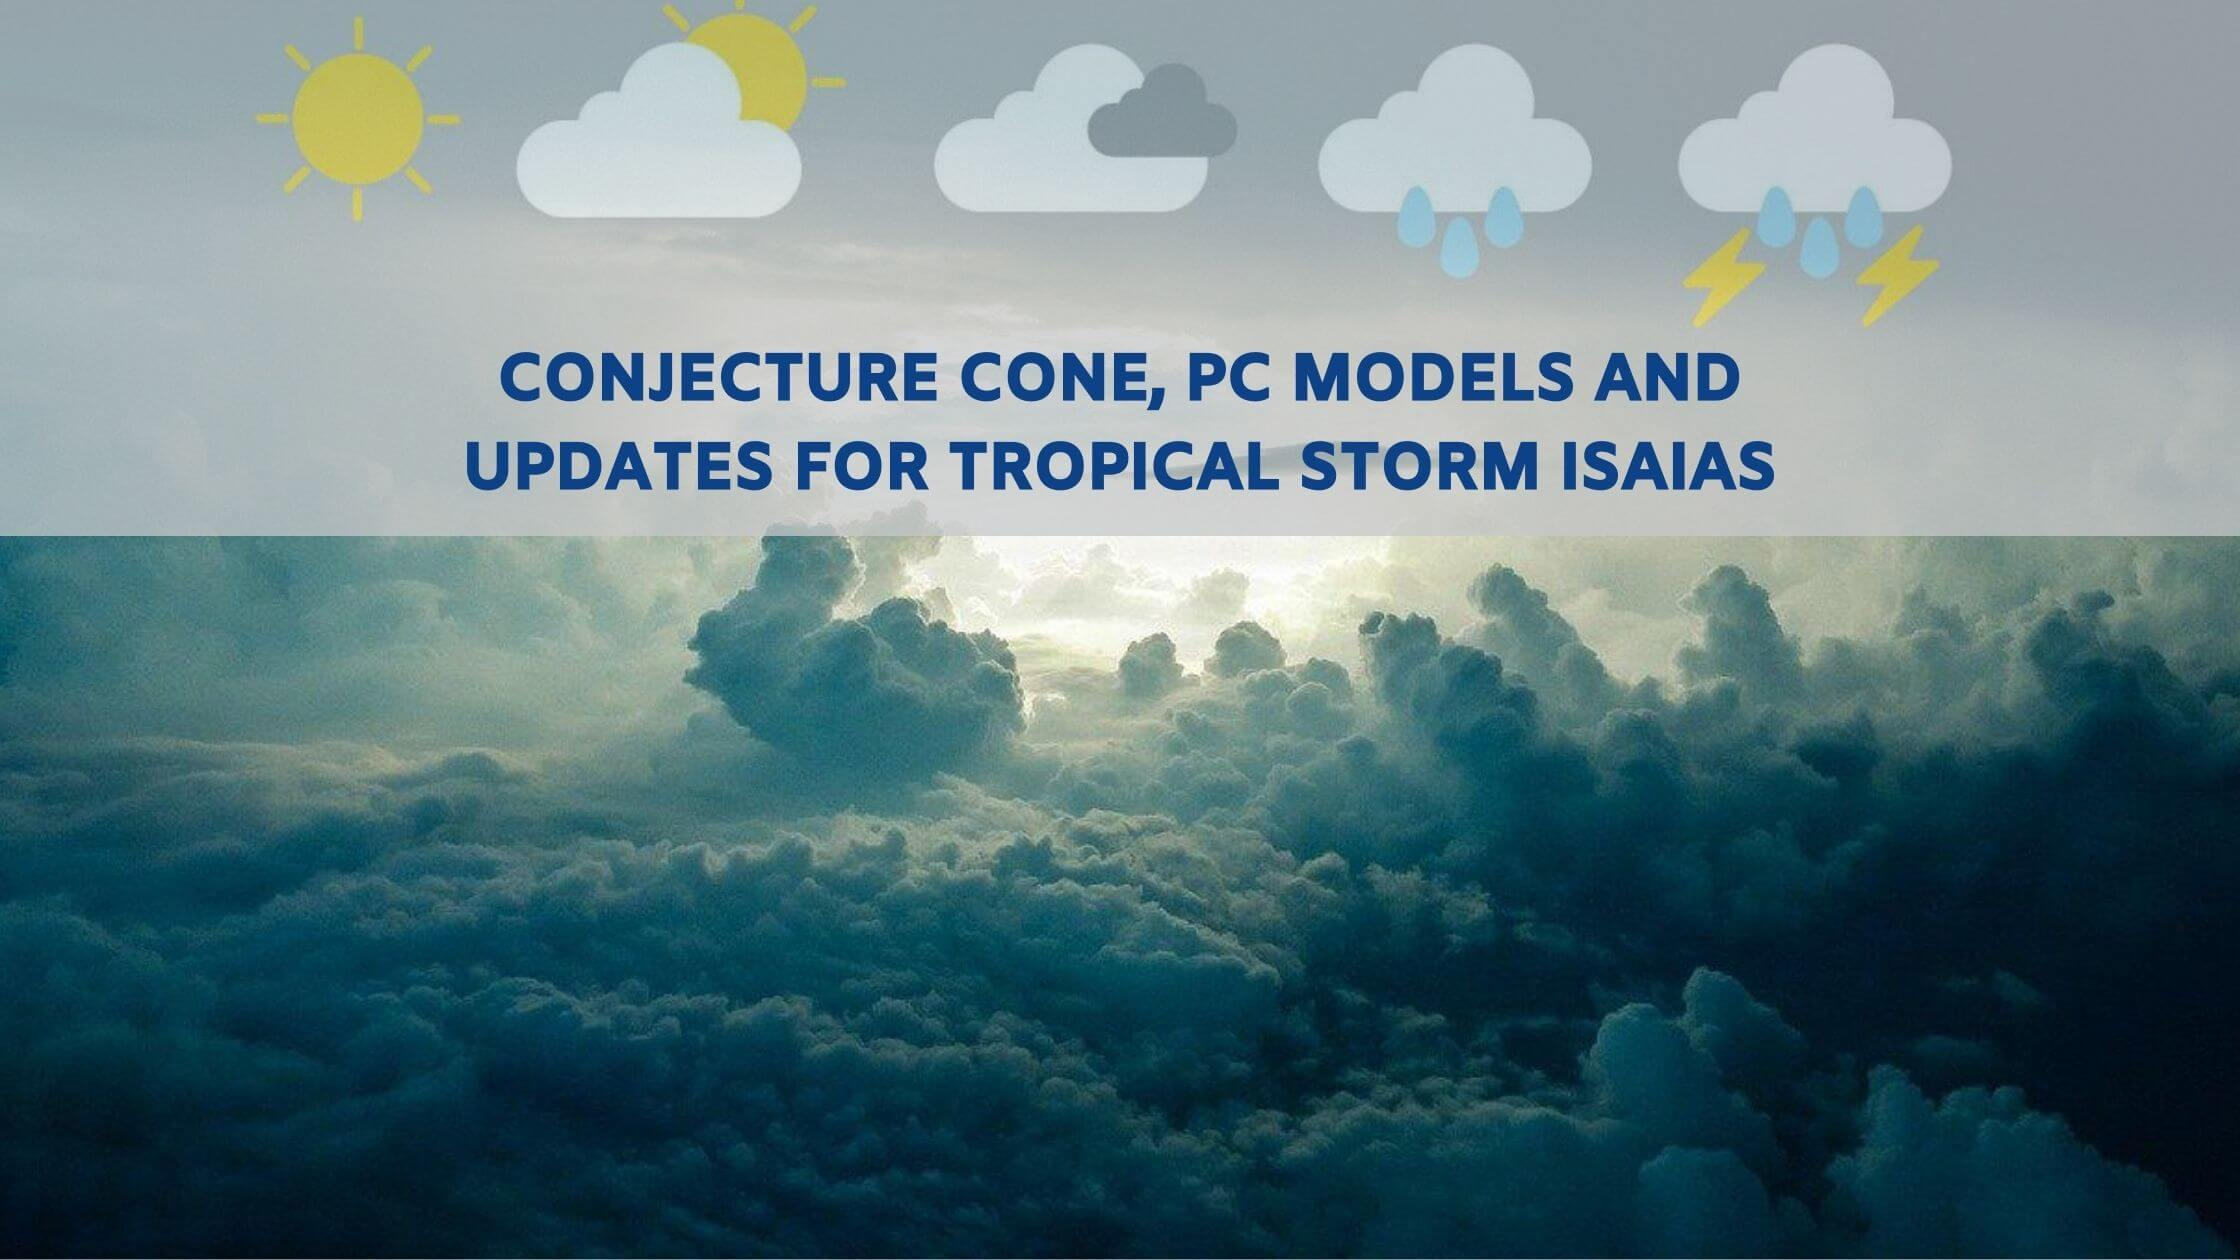 Conjecture cone, PC models and updates for Tropical Storm Isaias